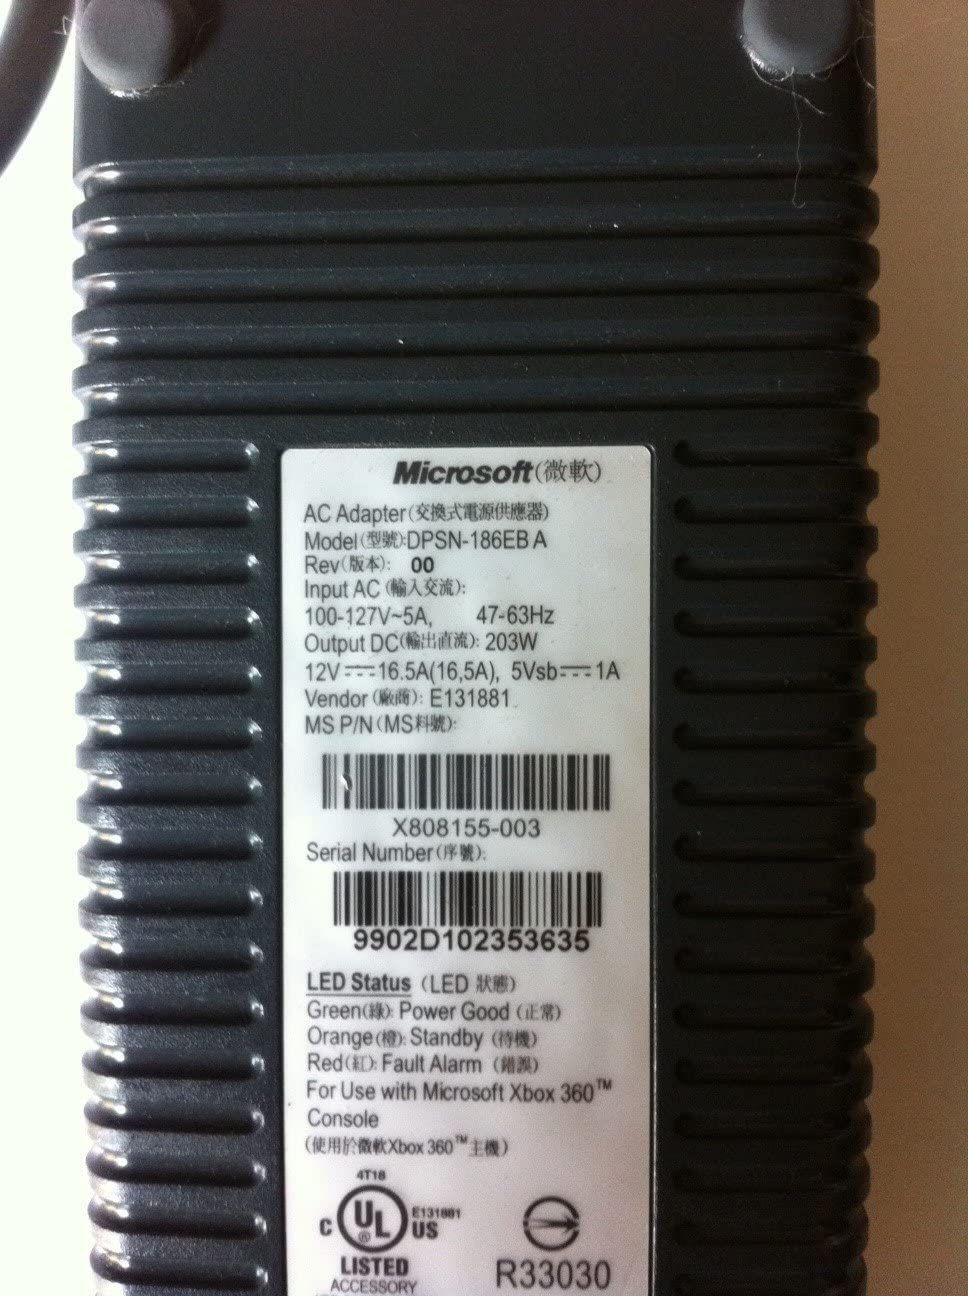 Microsoft Original Power Supply 203W AC Adapter for XBOX 360 XENON OR ZEPHYR Models Only: Computers & Accessories